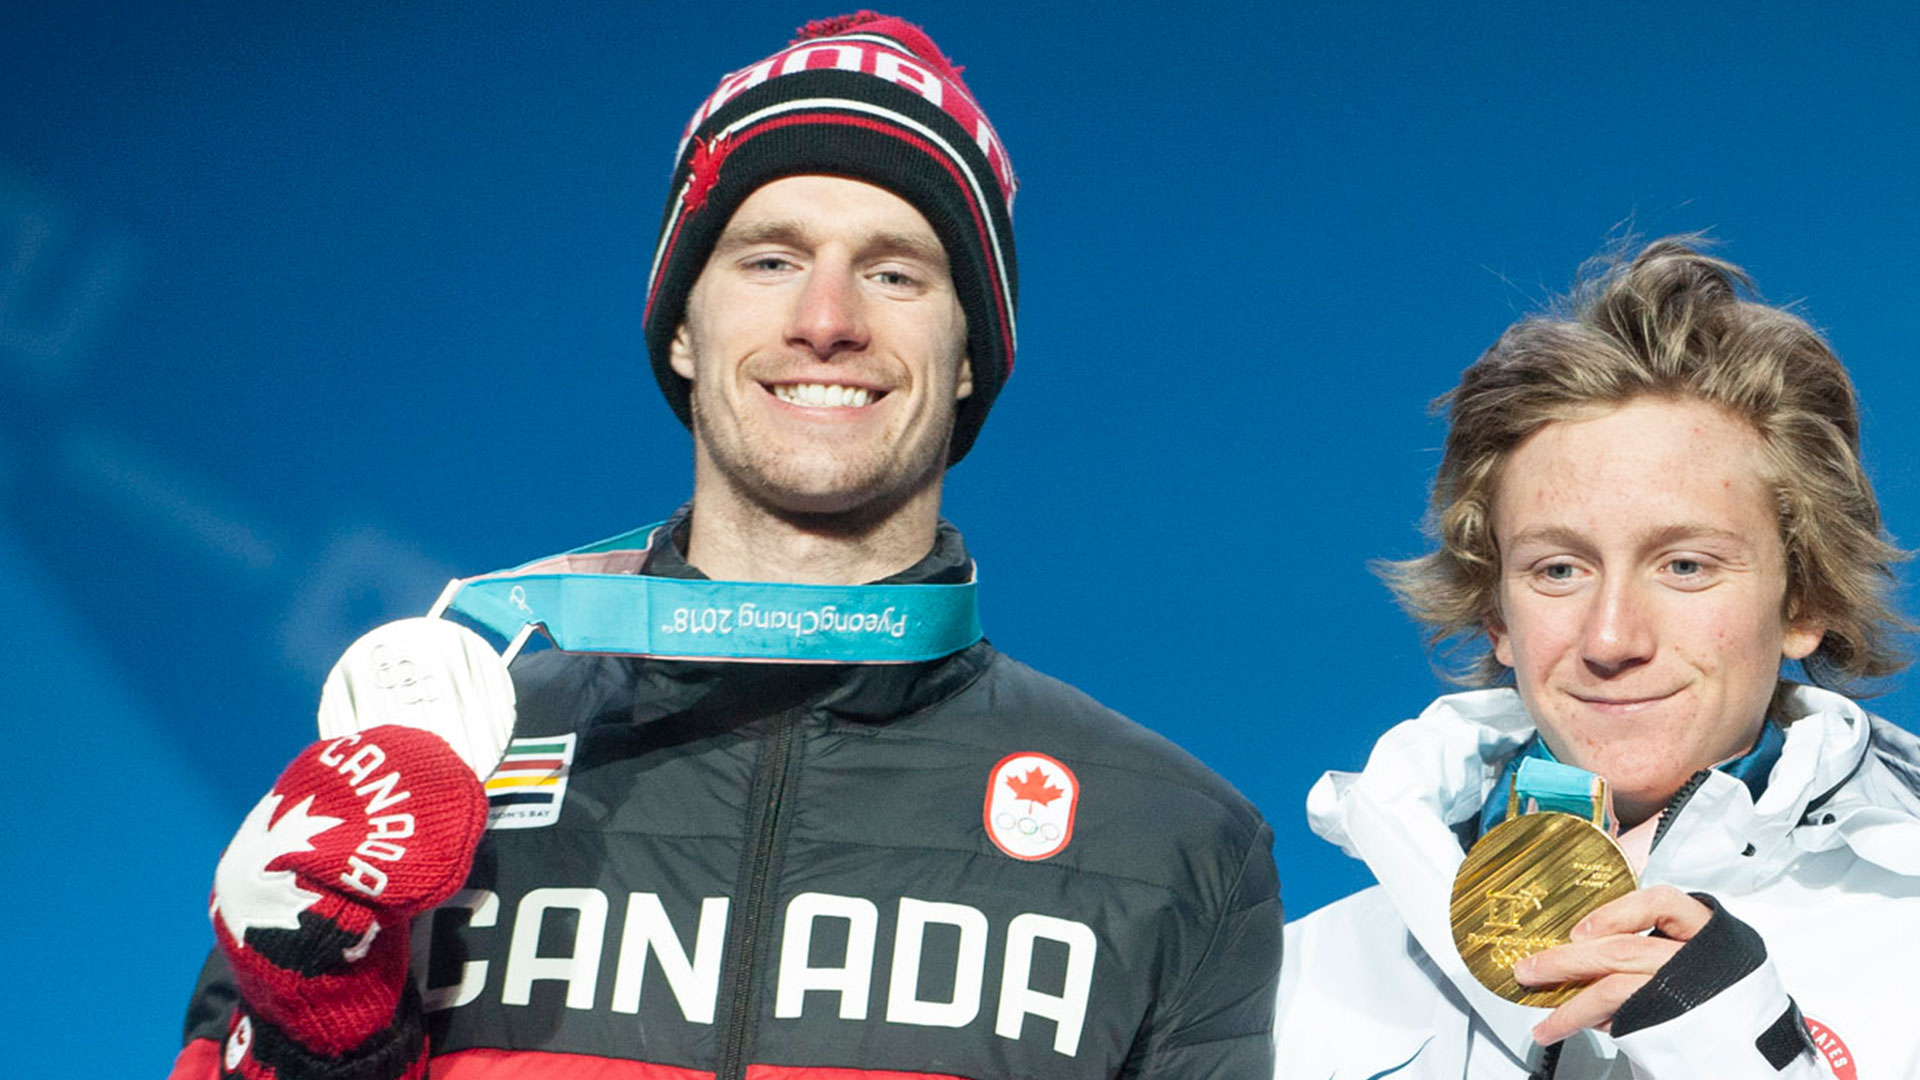 Olympic Snowboarder Max Parrot Plans To Compete Again After Battling Cancer | Snowboarder Magazine